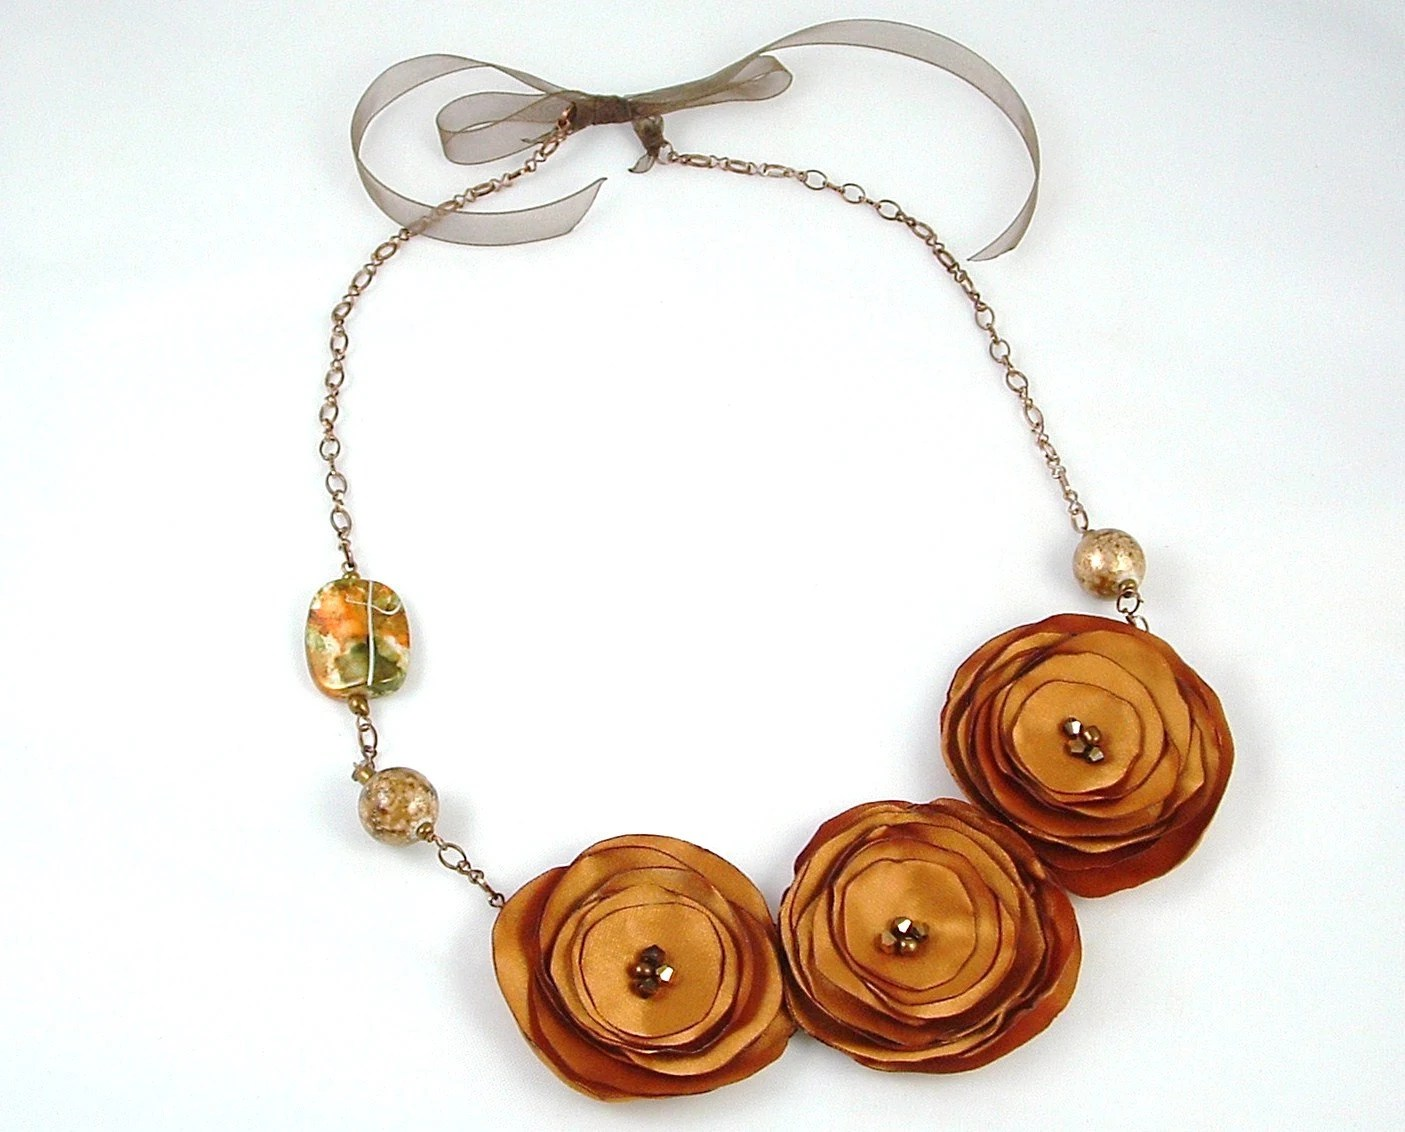 Granite Dark Gold Flower Fabric Necklace with glass beads and copper metal chain - GoodLuckWishes4U